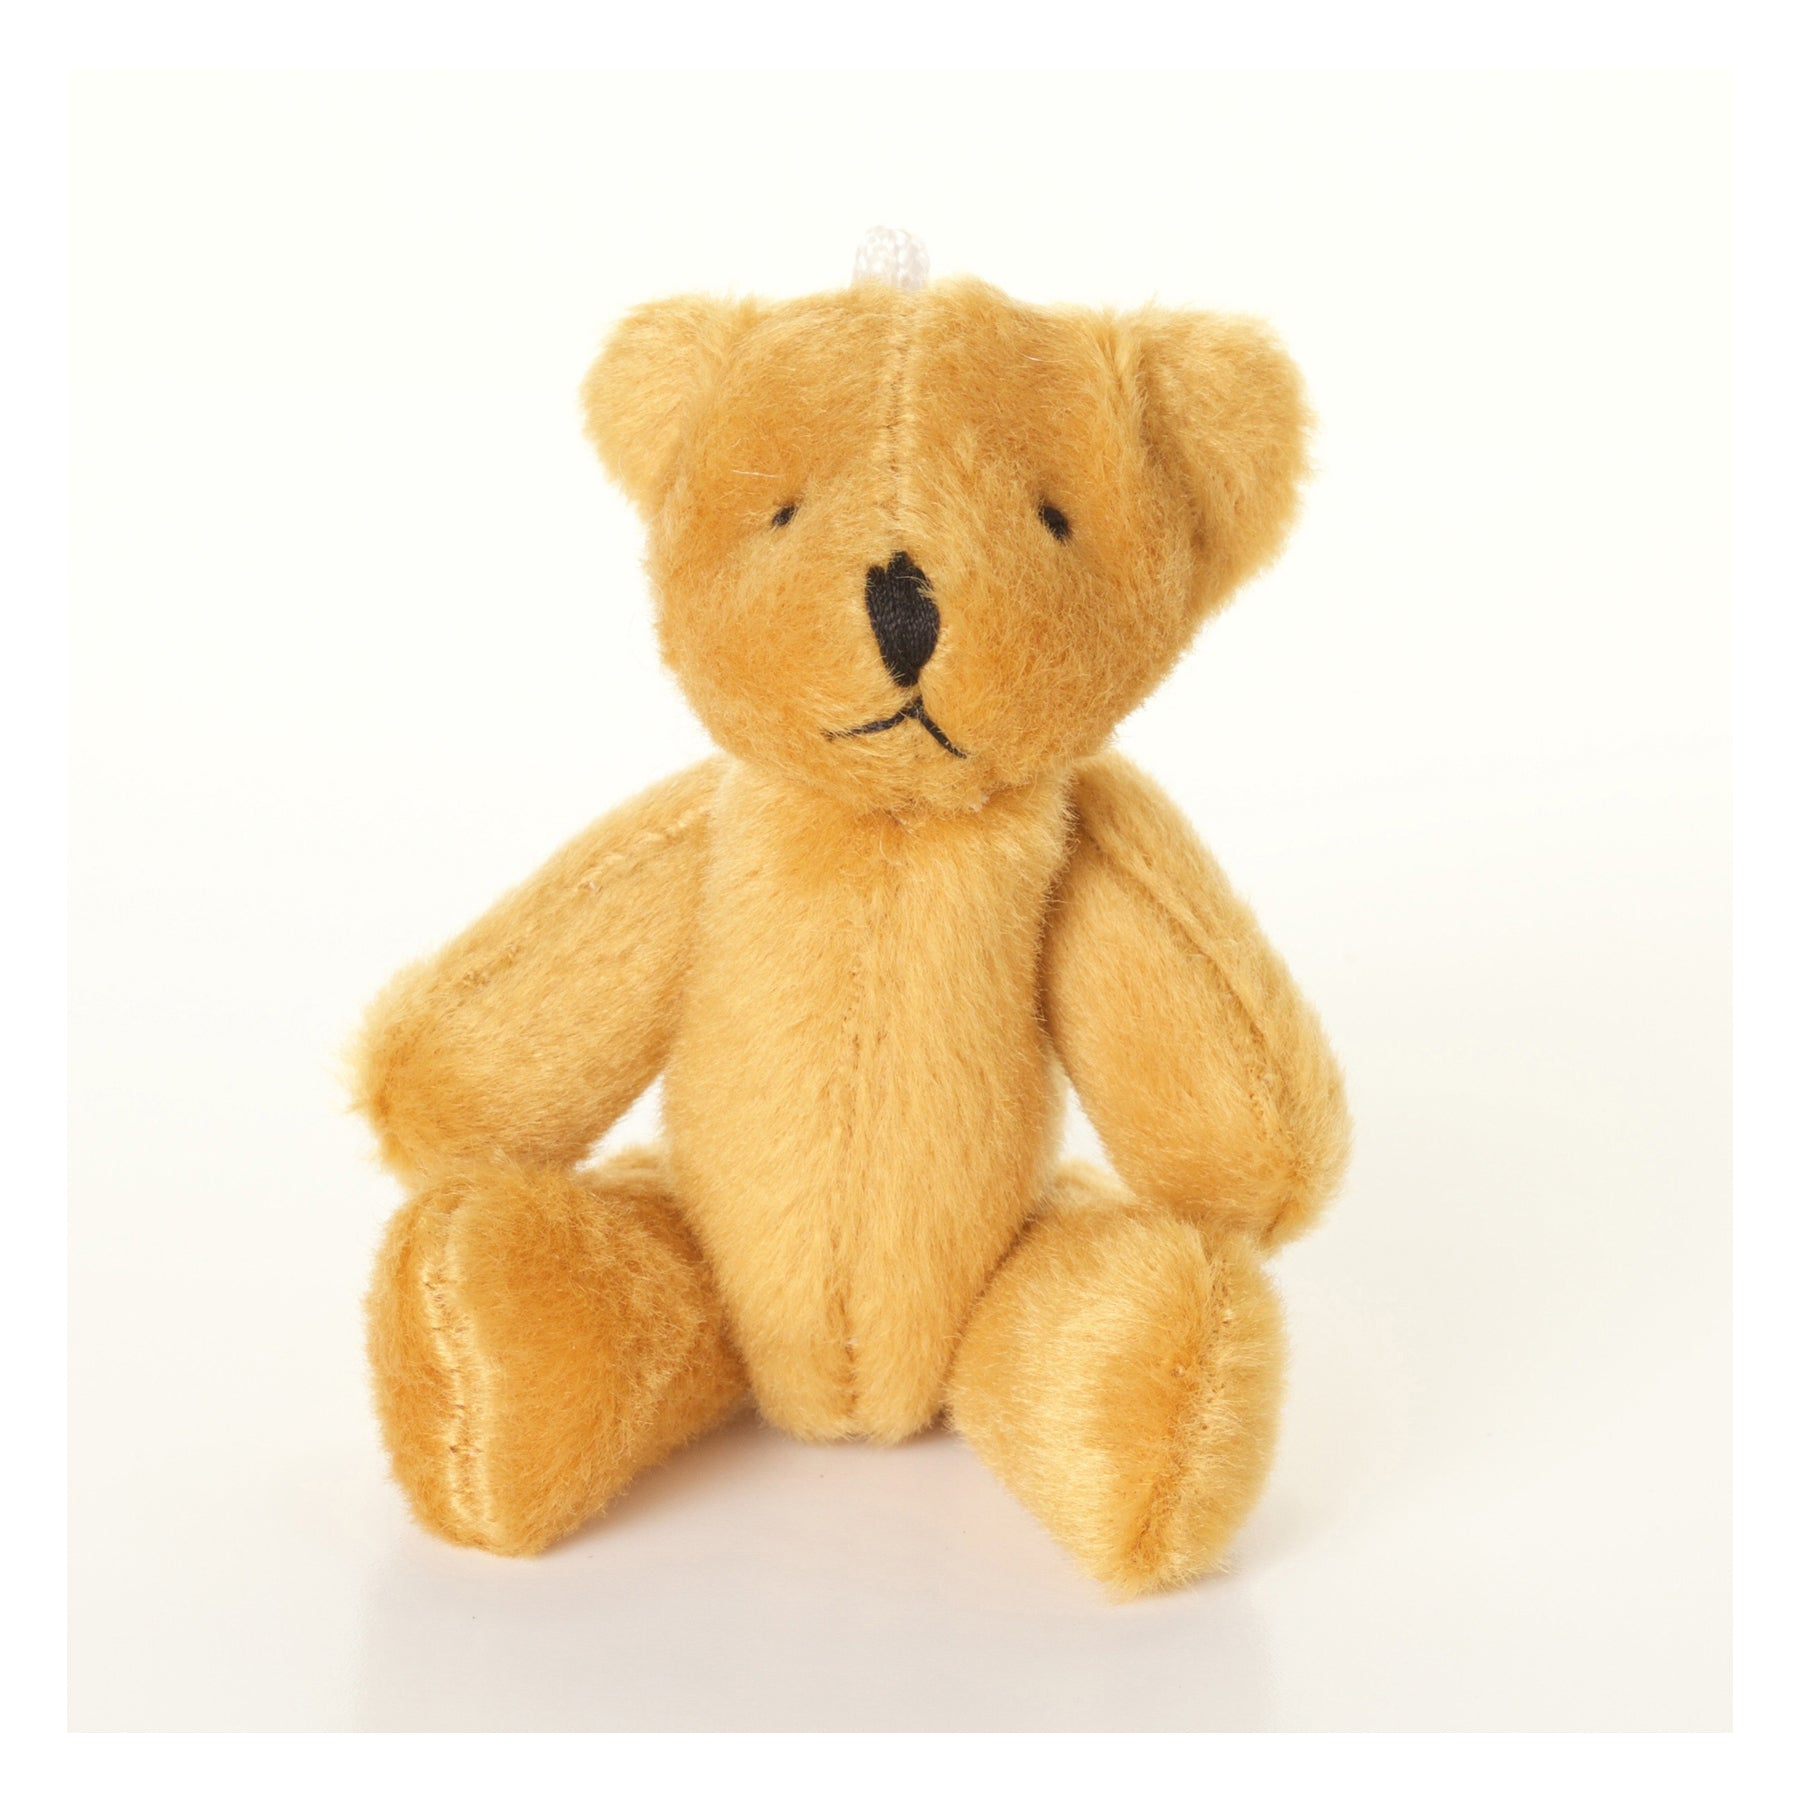 Small BROWN Teddy Bears X 75 - Cute Soft Adorable